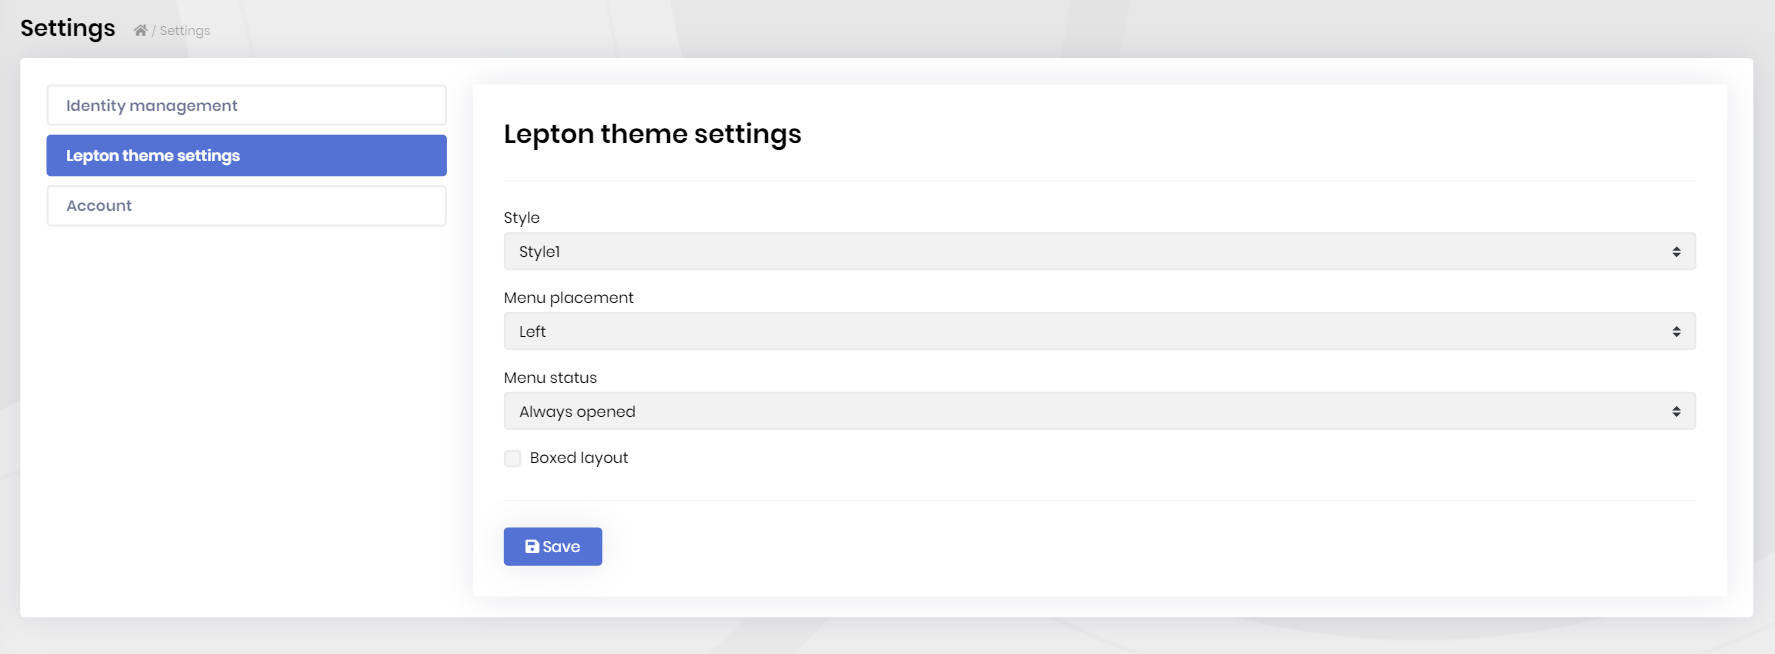 lepton-theme-module-settings-page